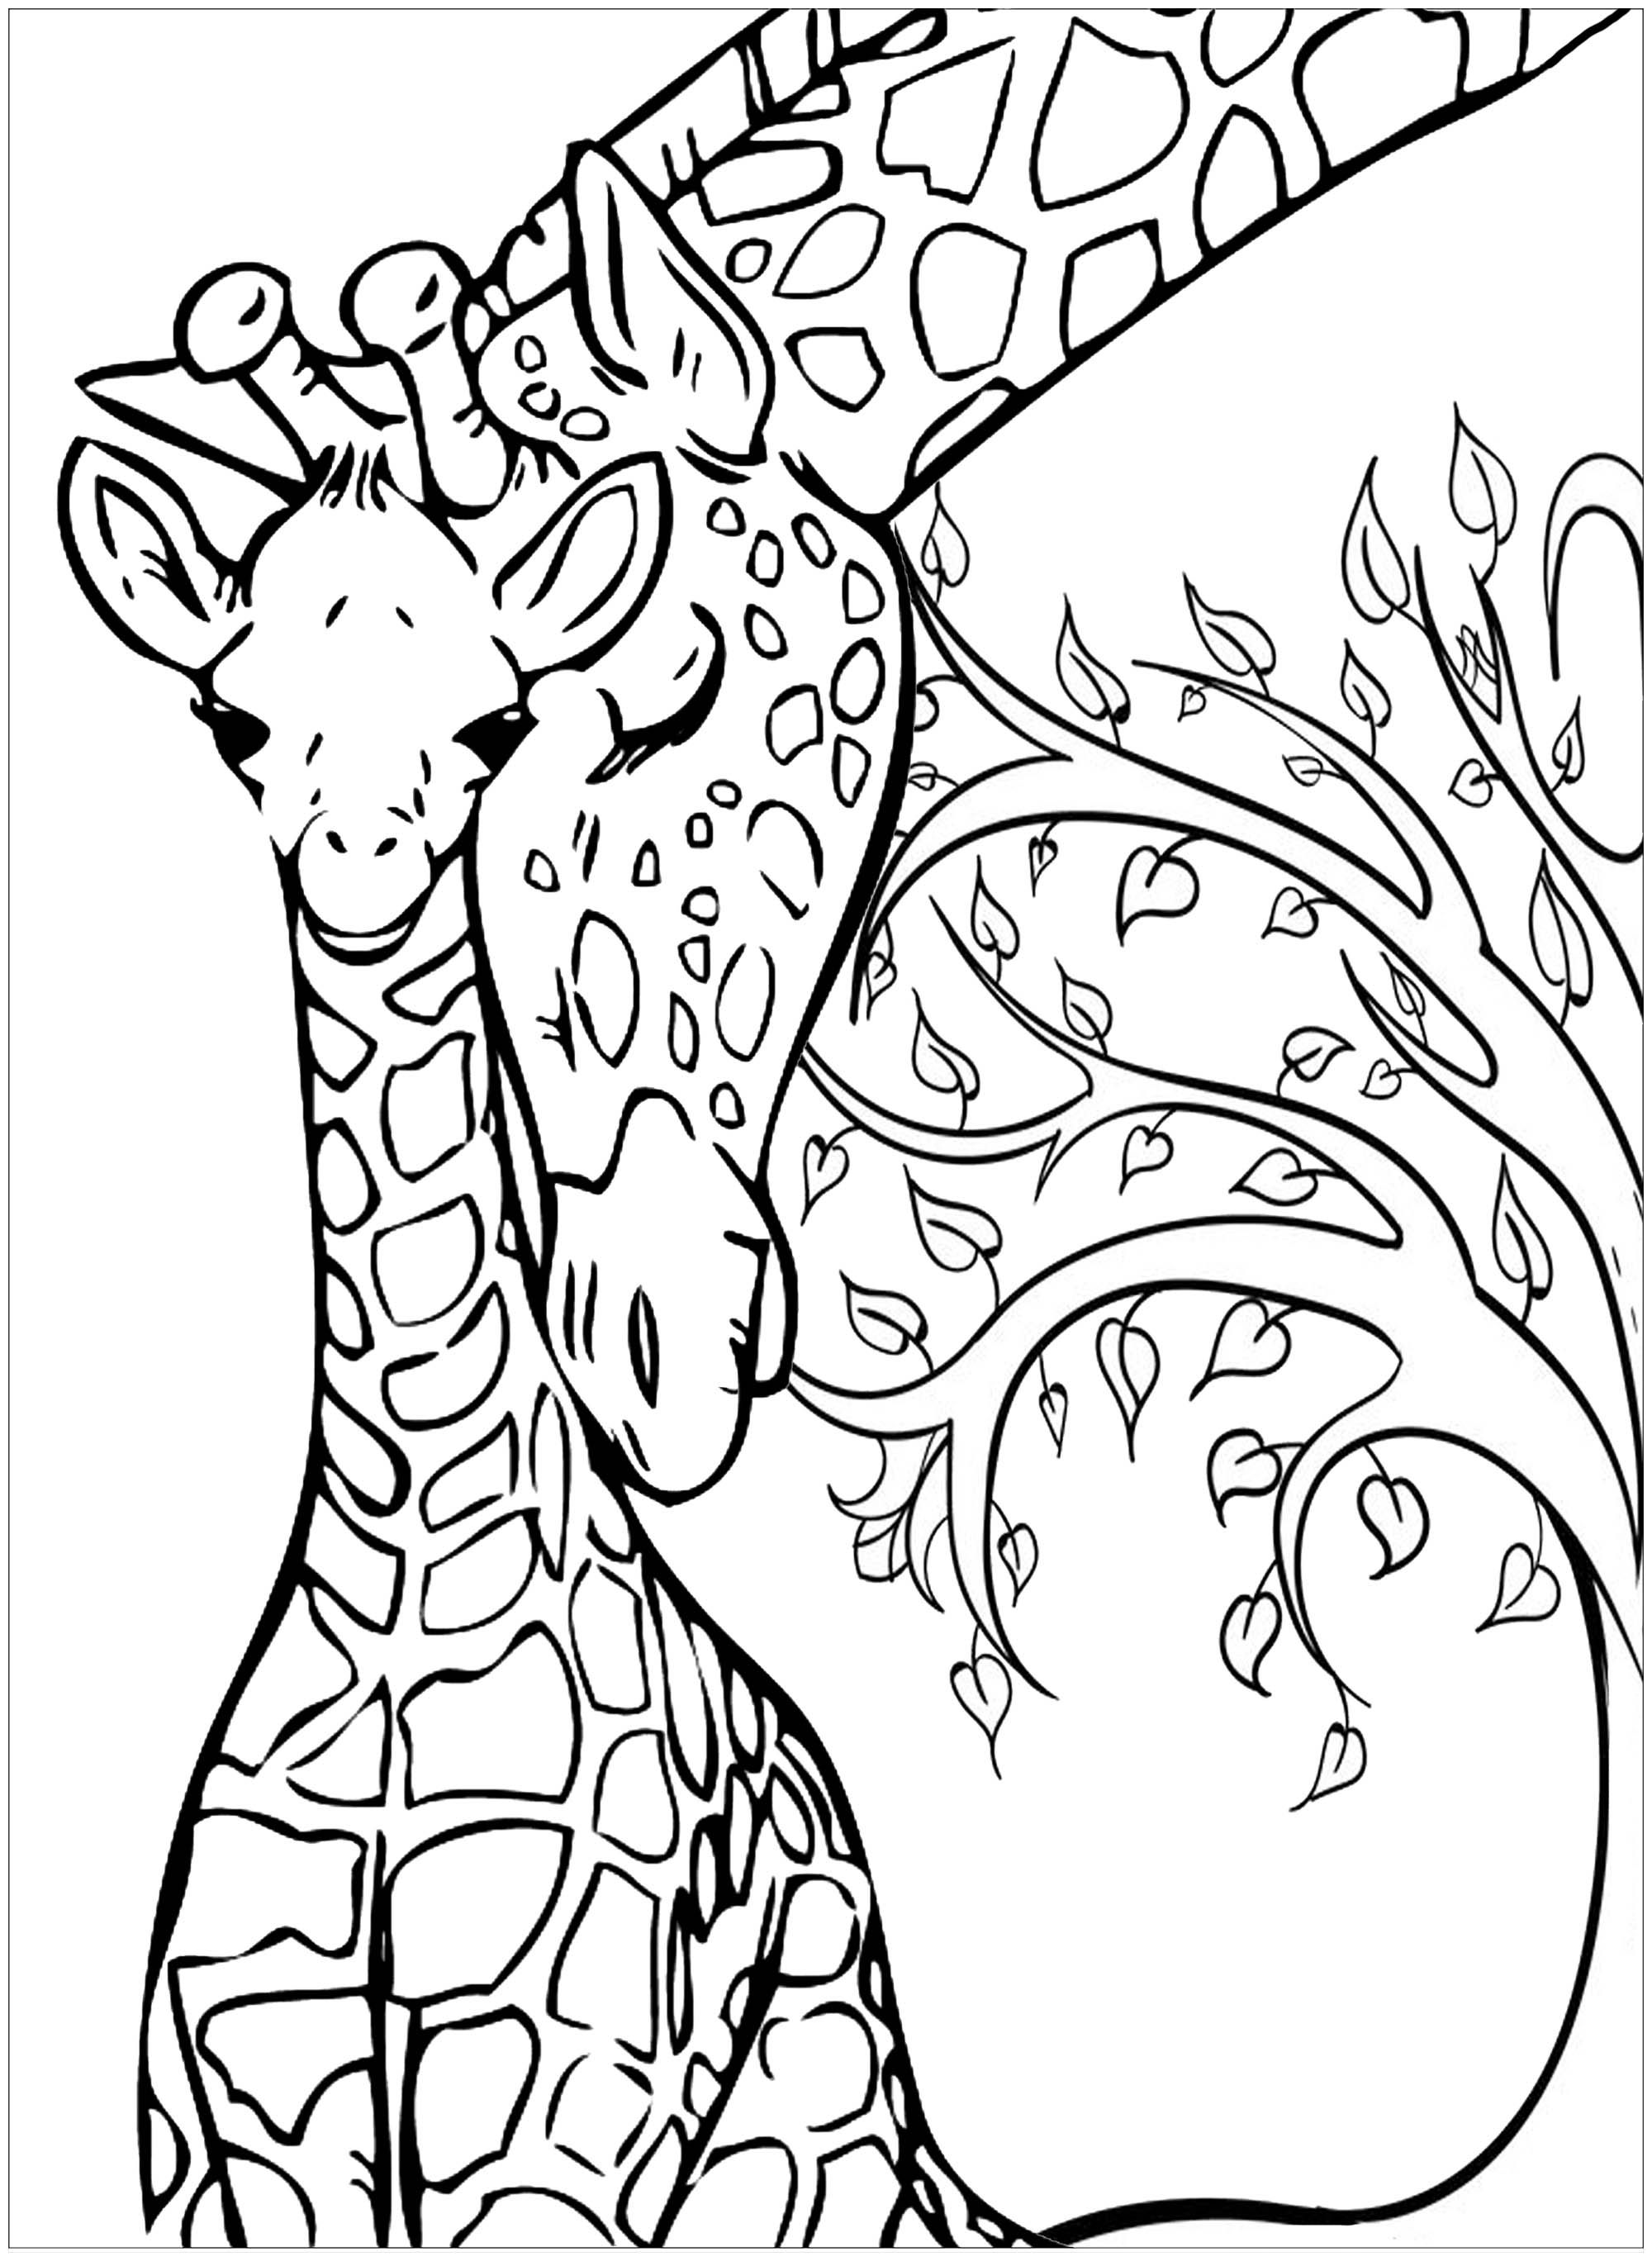 Baby Giraffe And His Mother Color These Two Giraffes With Tree In Background From The Gallery Giraffe Coloring Pages Planet Coloring Pages Giraffe Colors